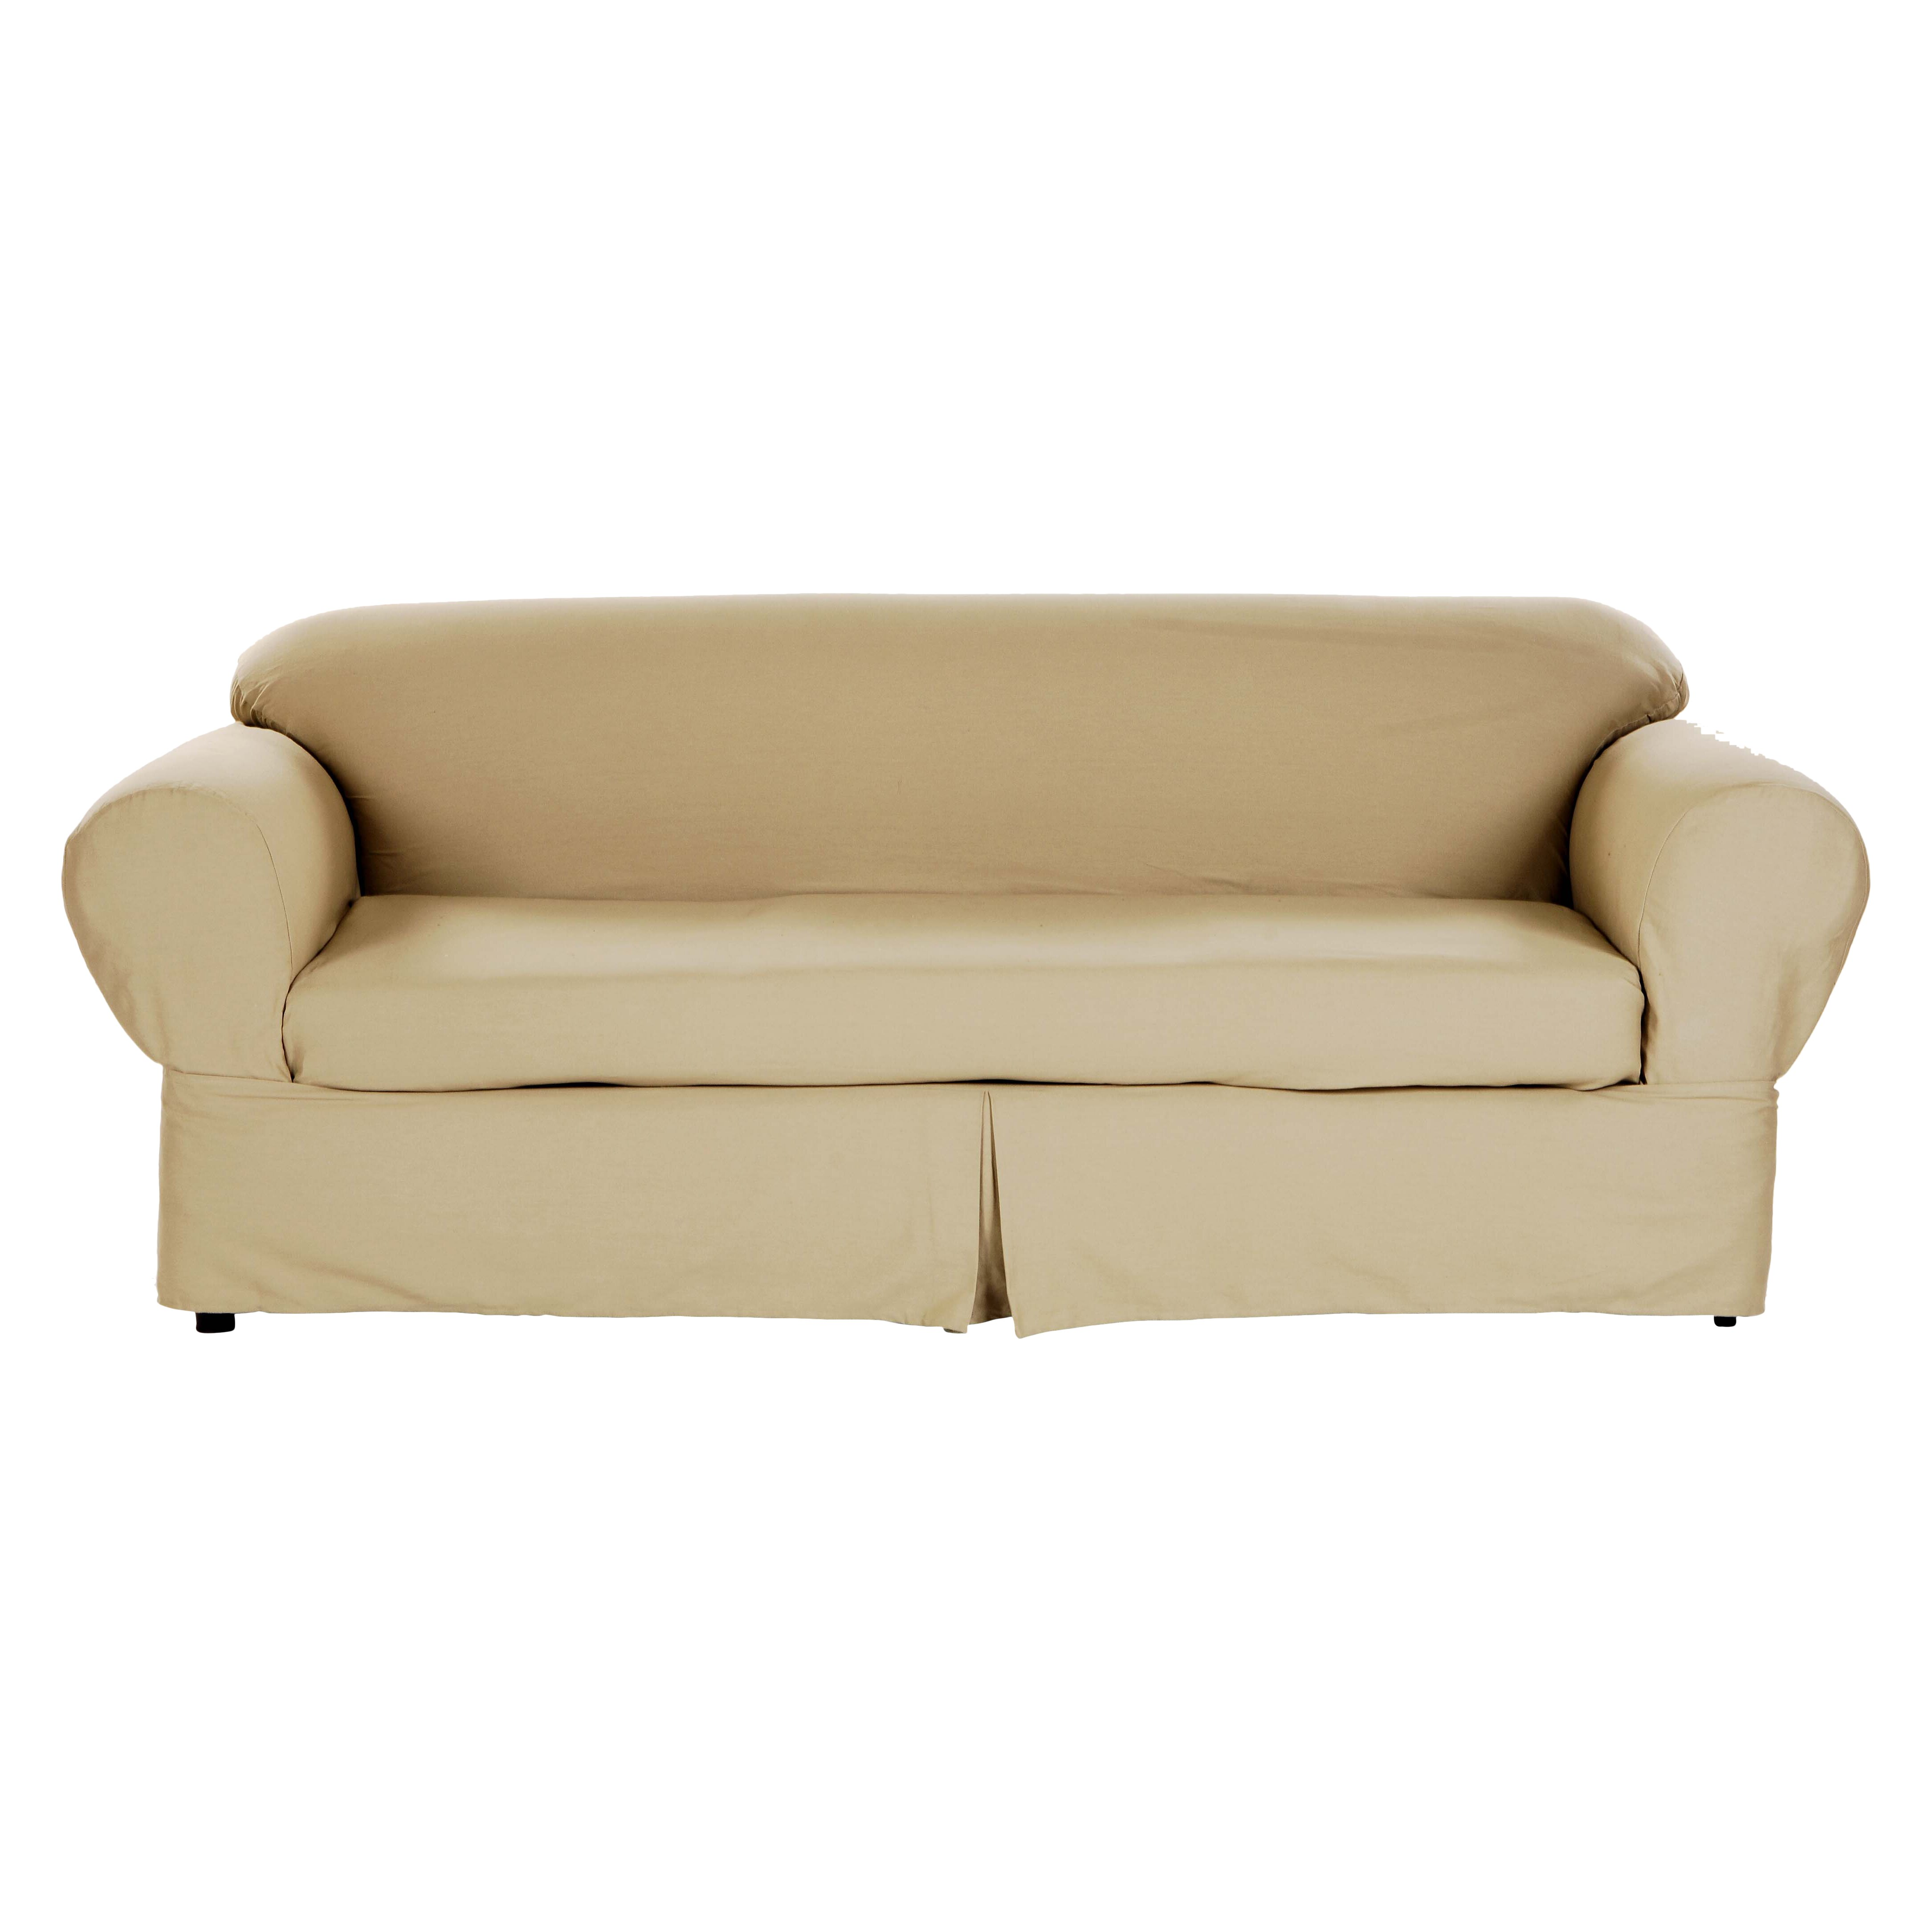 Darby home co brushed twill sofa slipcover reviews wayfair Cover for loveseat